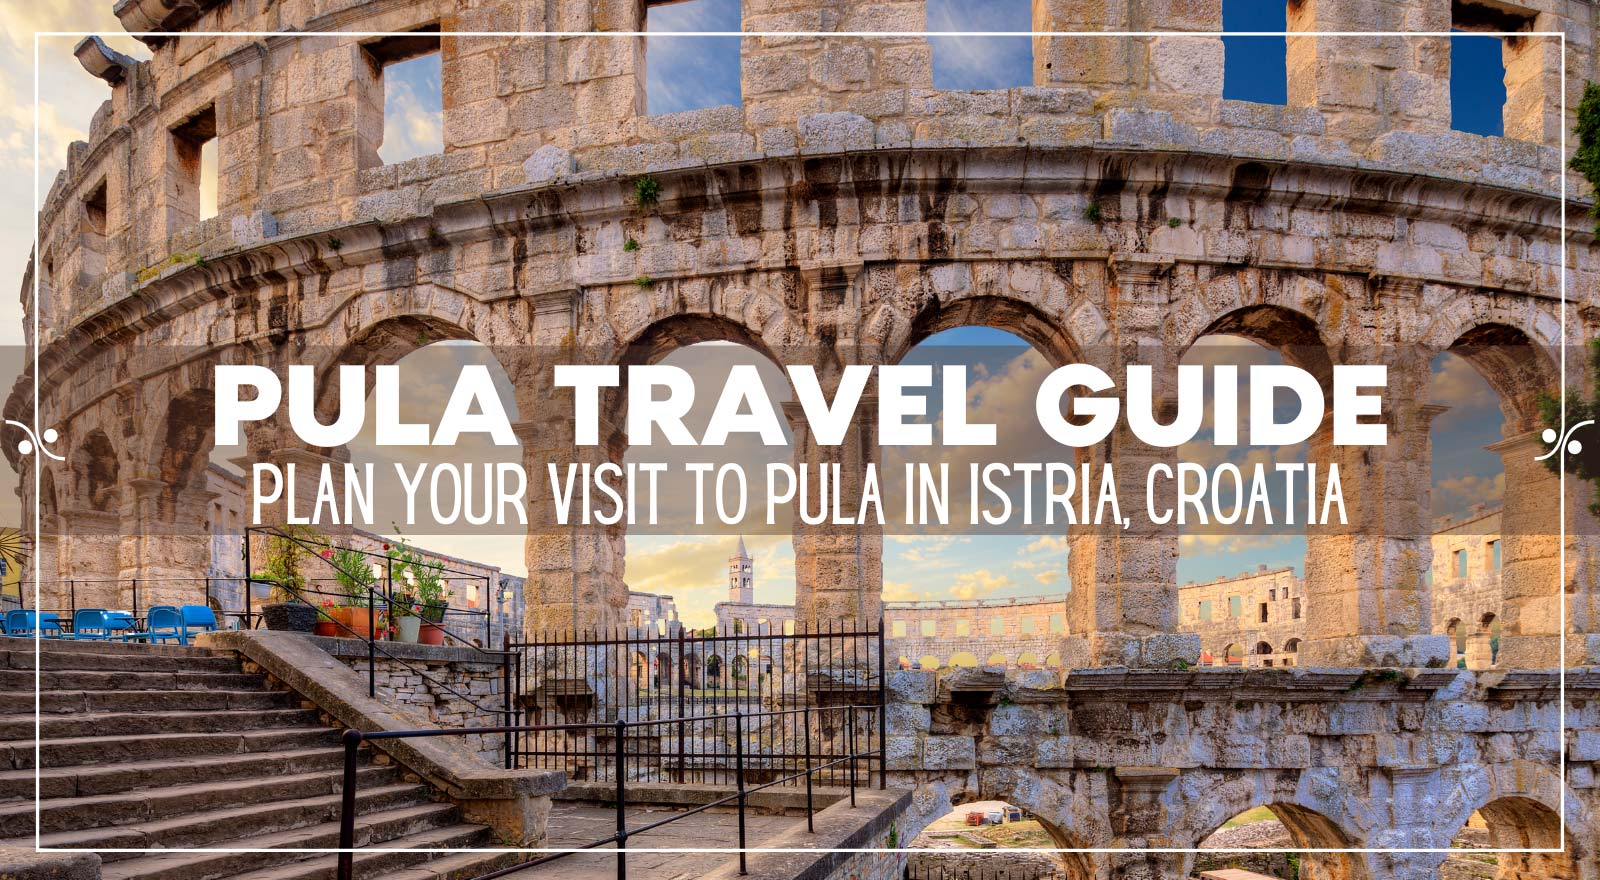 Pula Travel Guide: Plan Your Visit To Pula, Croatia, Illustration